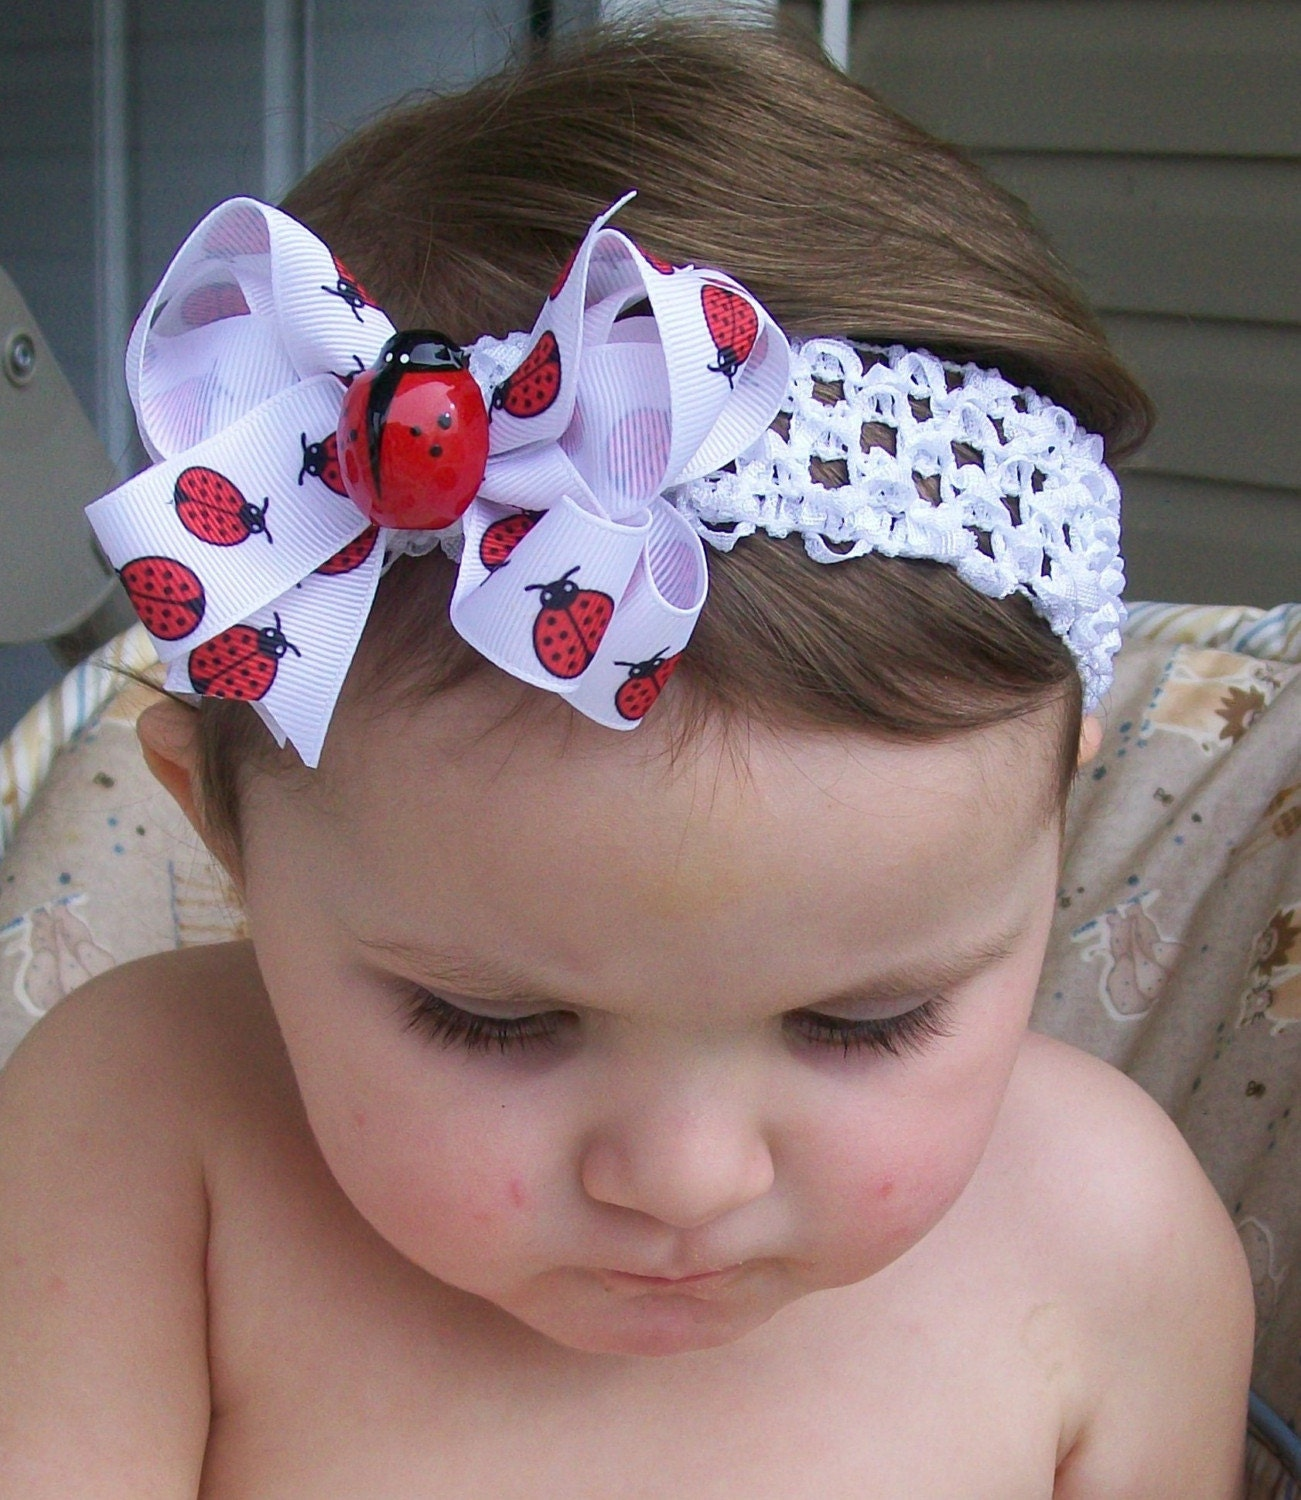 ANNIVERSARY SALE......ITTY BITTY BUG Love..... LADYBUG BOUTIQUE BOW....ONE DOLLAR SHIPPING